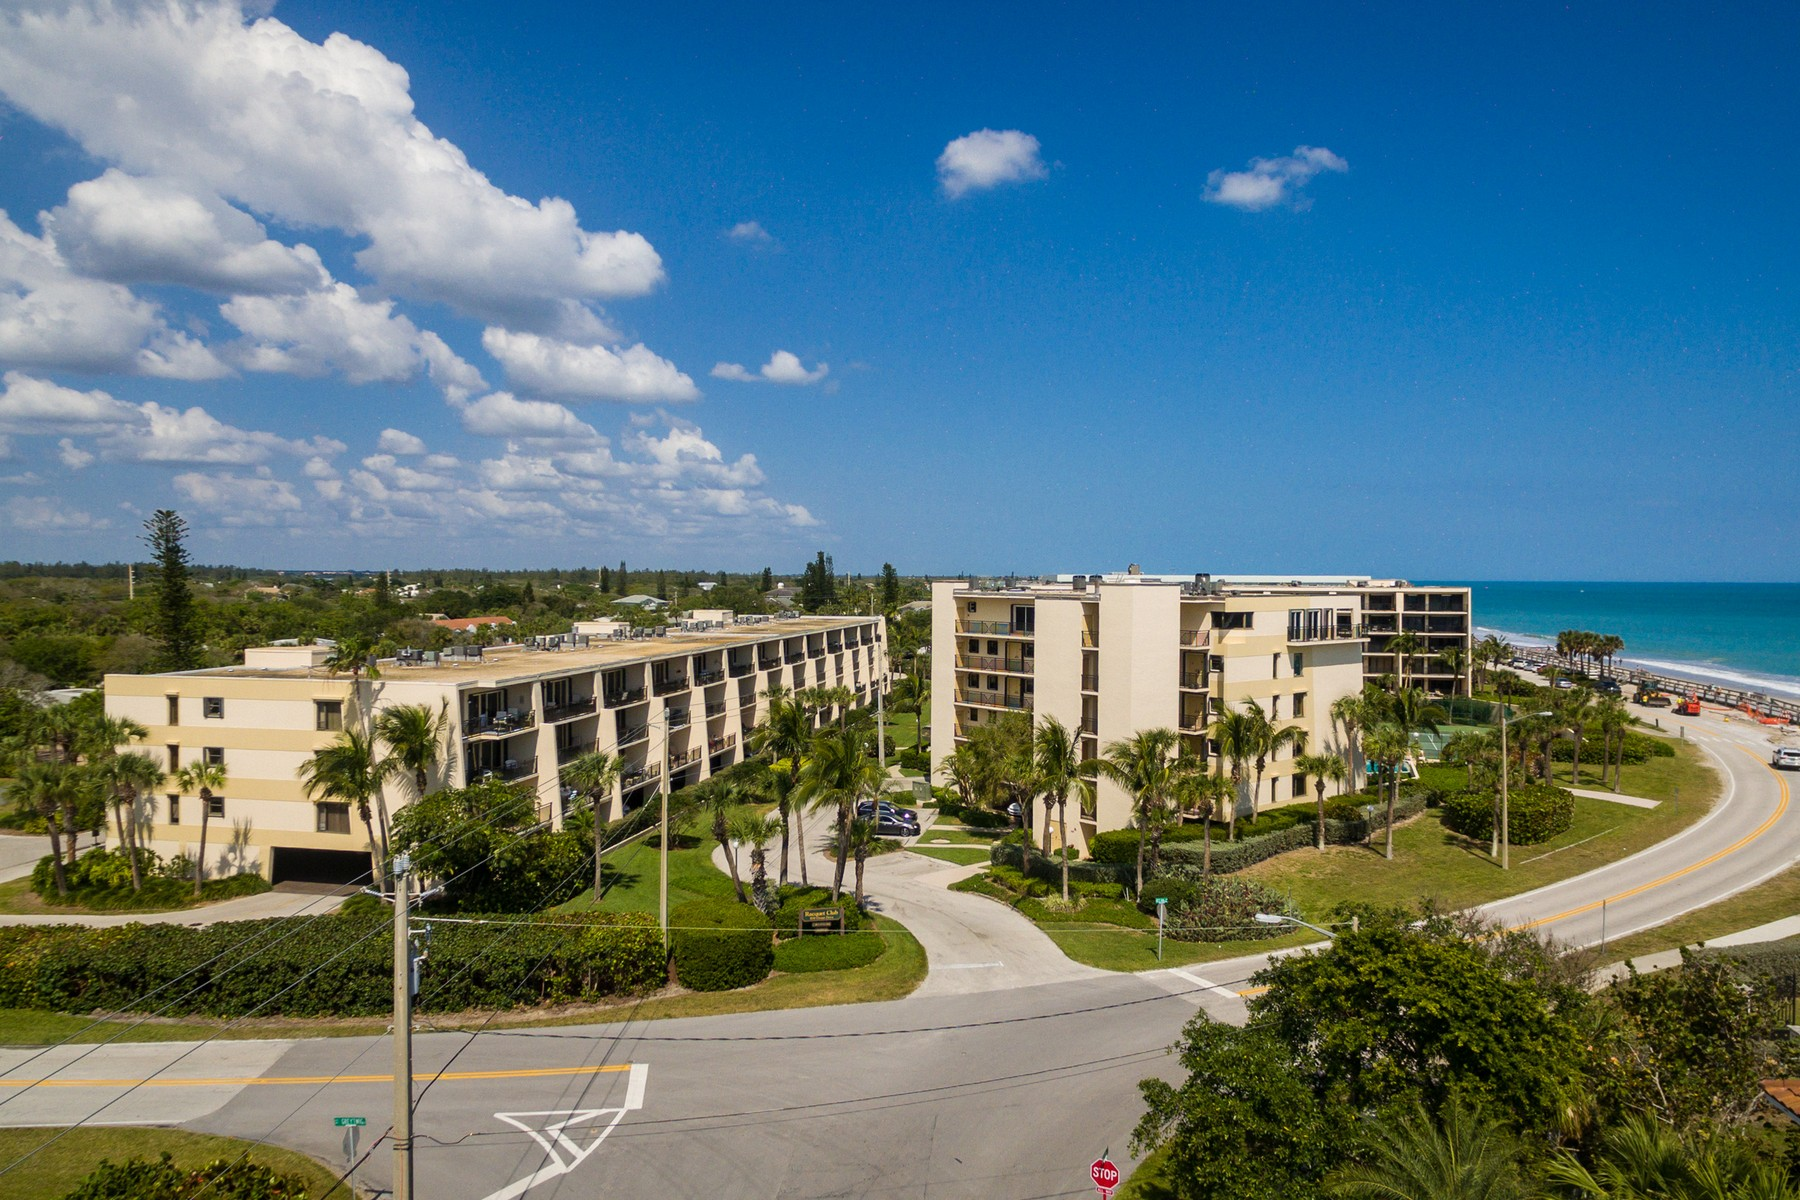 Condominium for Sale at Fully Furnished Ocean View Condo 3939 Ocean Drive #204C Vero Beach, Florida 32963 United States